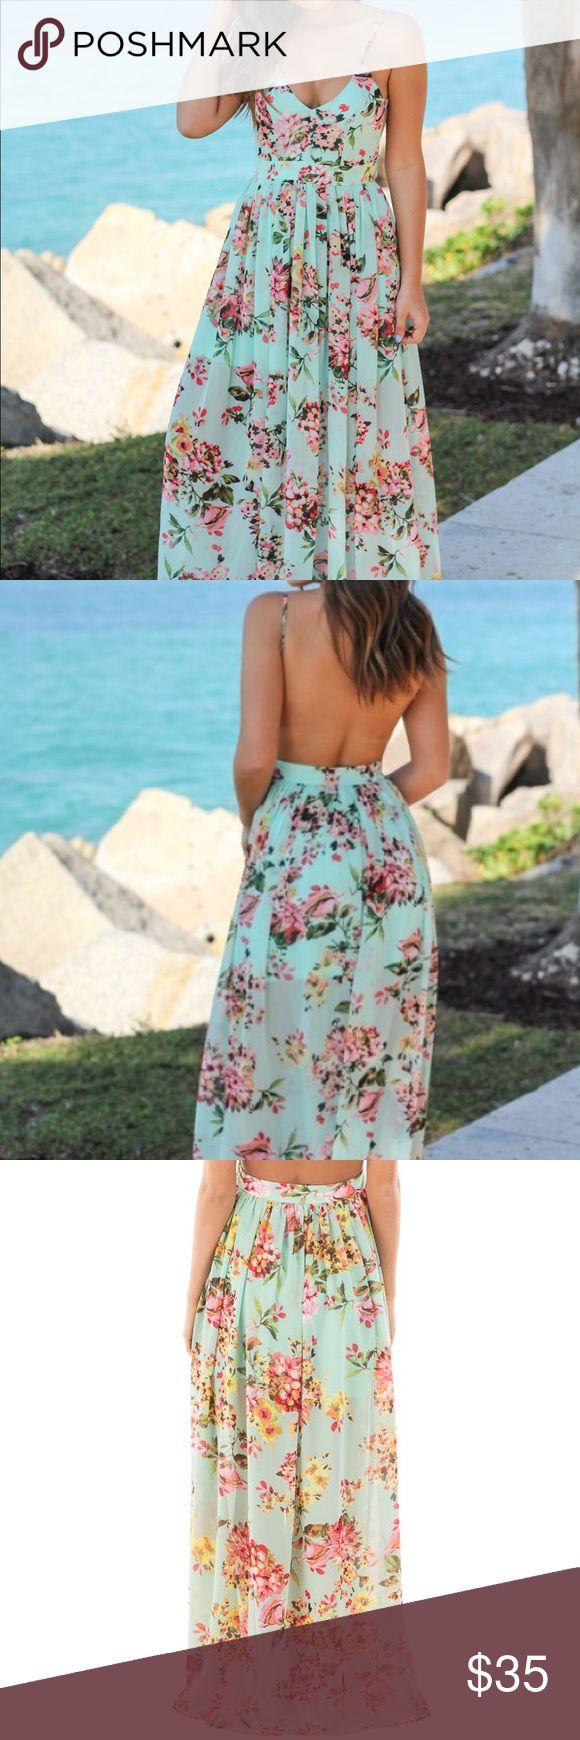 Mint Floral Backless maxi dress Super cute Mint Floral Maxi Dress with Open Back! Perfect for any special occasion.I  love its beautiful floral print, flowy skirt and open back! The color combo is so pretty! Worn one time to a wedding and is in excellent condition   100% Polyester Length:  53 inches Model is 5'5, 32 B bust, size 2/4 pants, size small top and is wearing a size small. Fits True to Size V-Neck Flowy Skirt Adjustable Straps Zipper on the Side Partially Lined Hand Wash Cold Line…